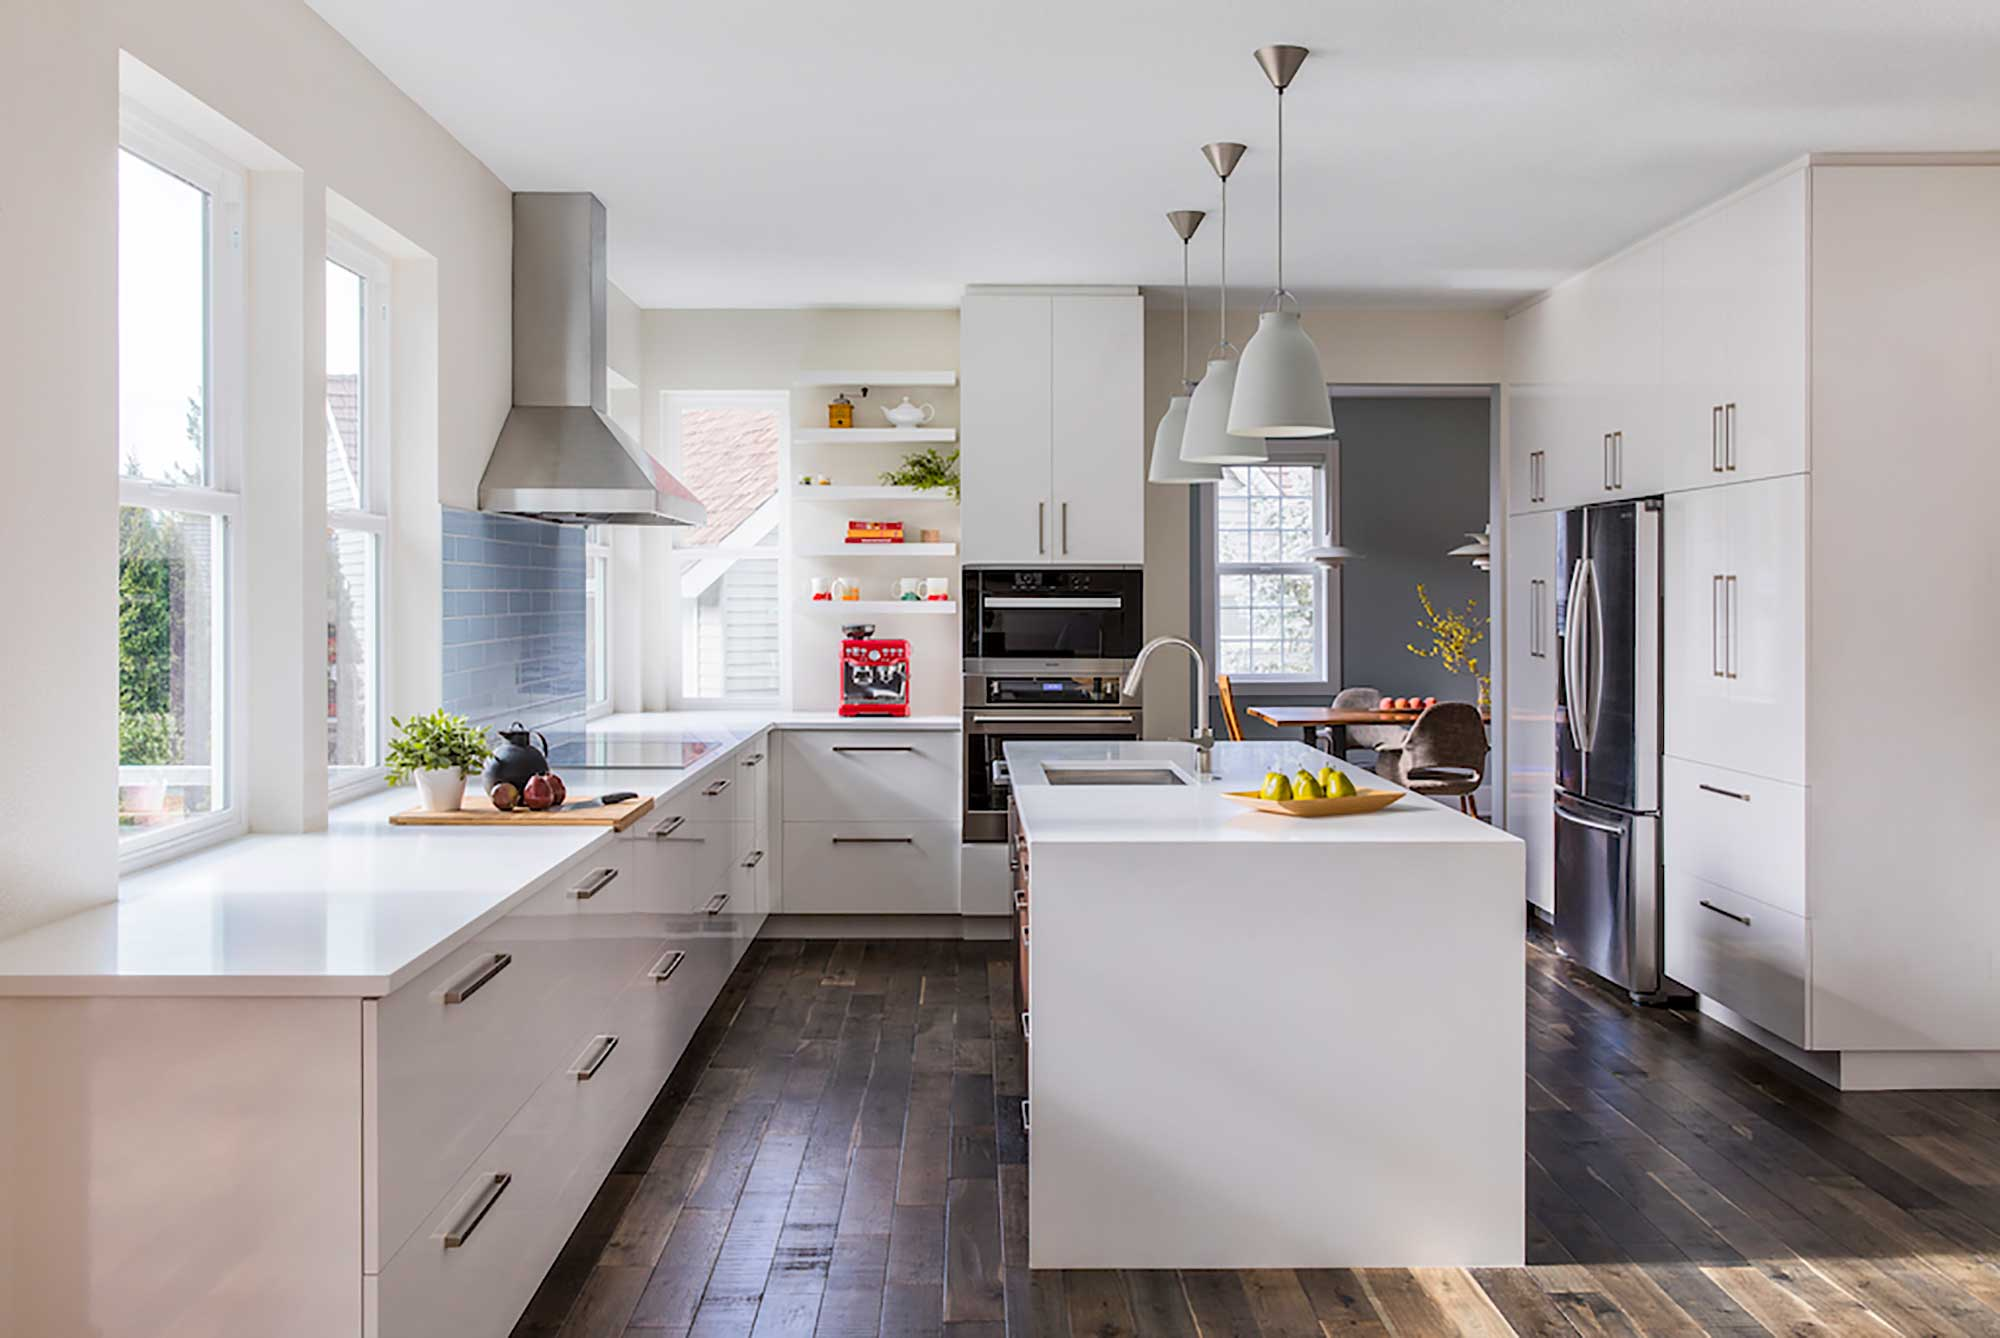 Kitchen remodel with white cabinets, countertops, and a seamless waterfall island